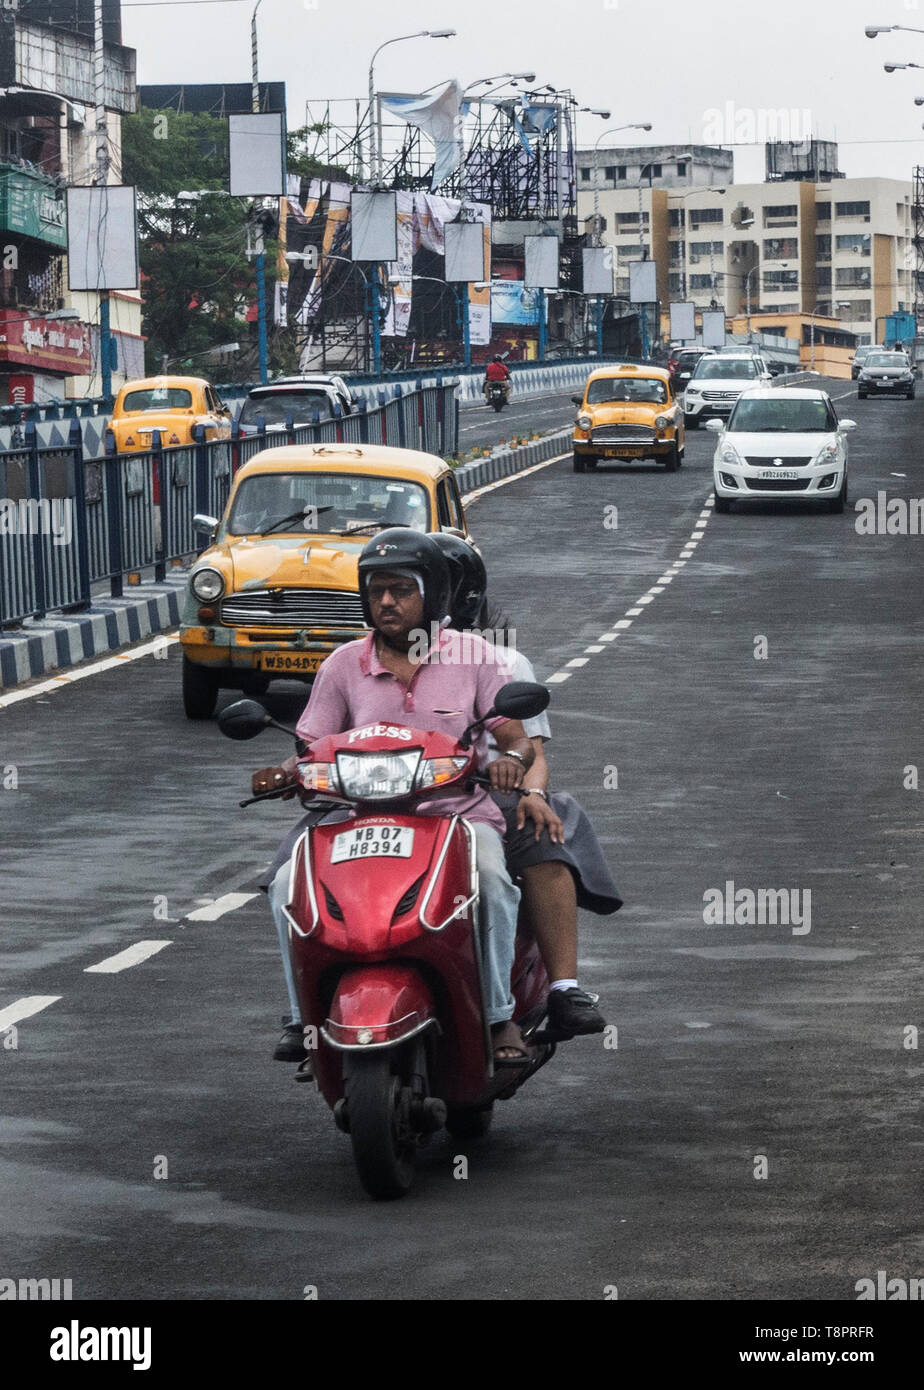 Kolkata, India. 14th May, 2019. Indian commuters travel through vehicles in?Kolkata, India, May 14, 2019. India's automobile sector continued its bumpy ride for the fifth consecutive month in April with 20 percent drop in car sales and 16 percent drop in two-wheeler sales, compared with the same period last year. The drastic drop in sales was attributed to several factors including liquidity squeeze in the market, rising fuel cost, interest rates and insurance costs that has dampened consumer sentiment. Credit: Tumpa Mondal/Xinhua/Alamy Live News Stock Photo